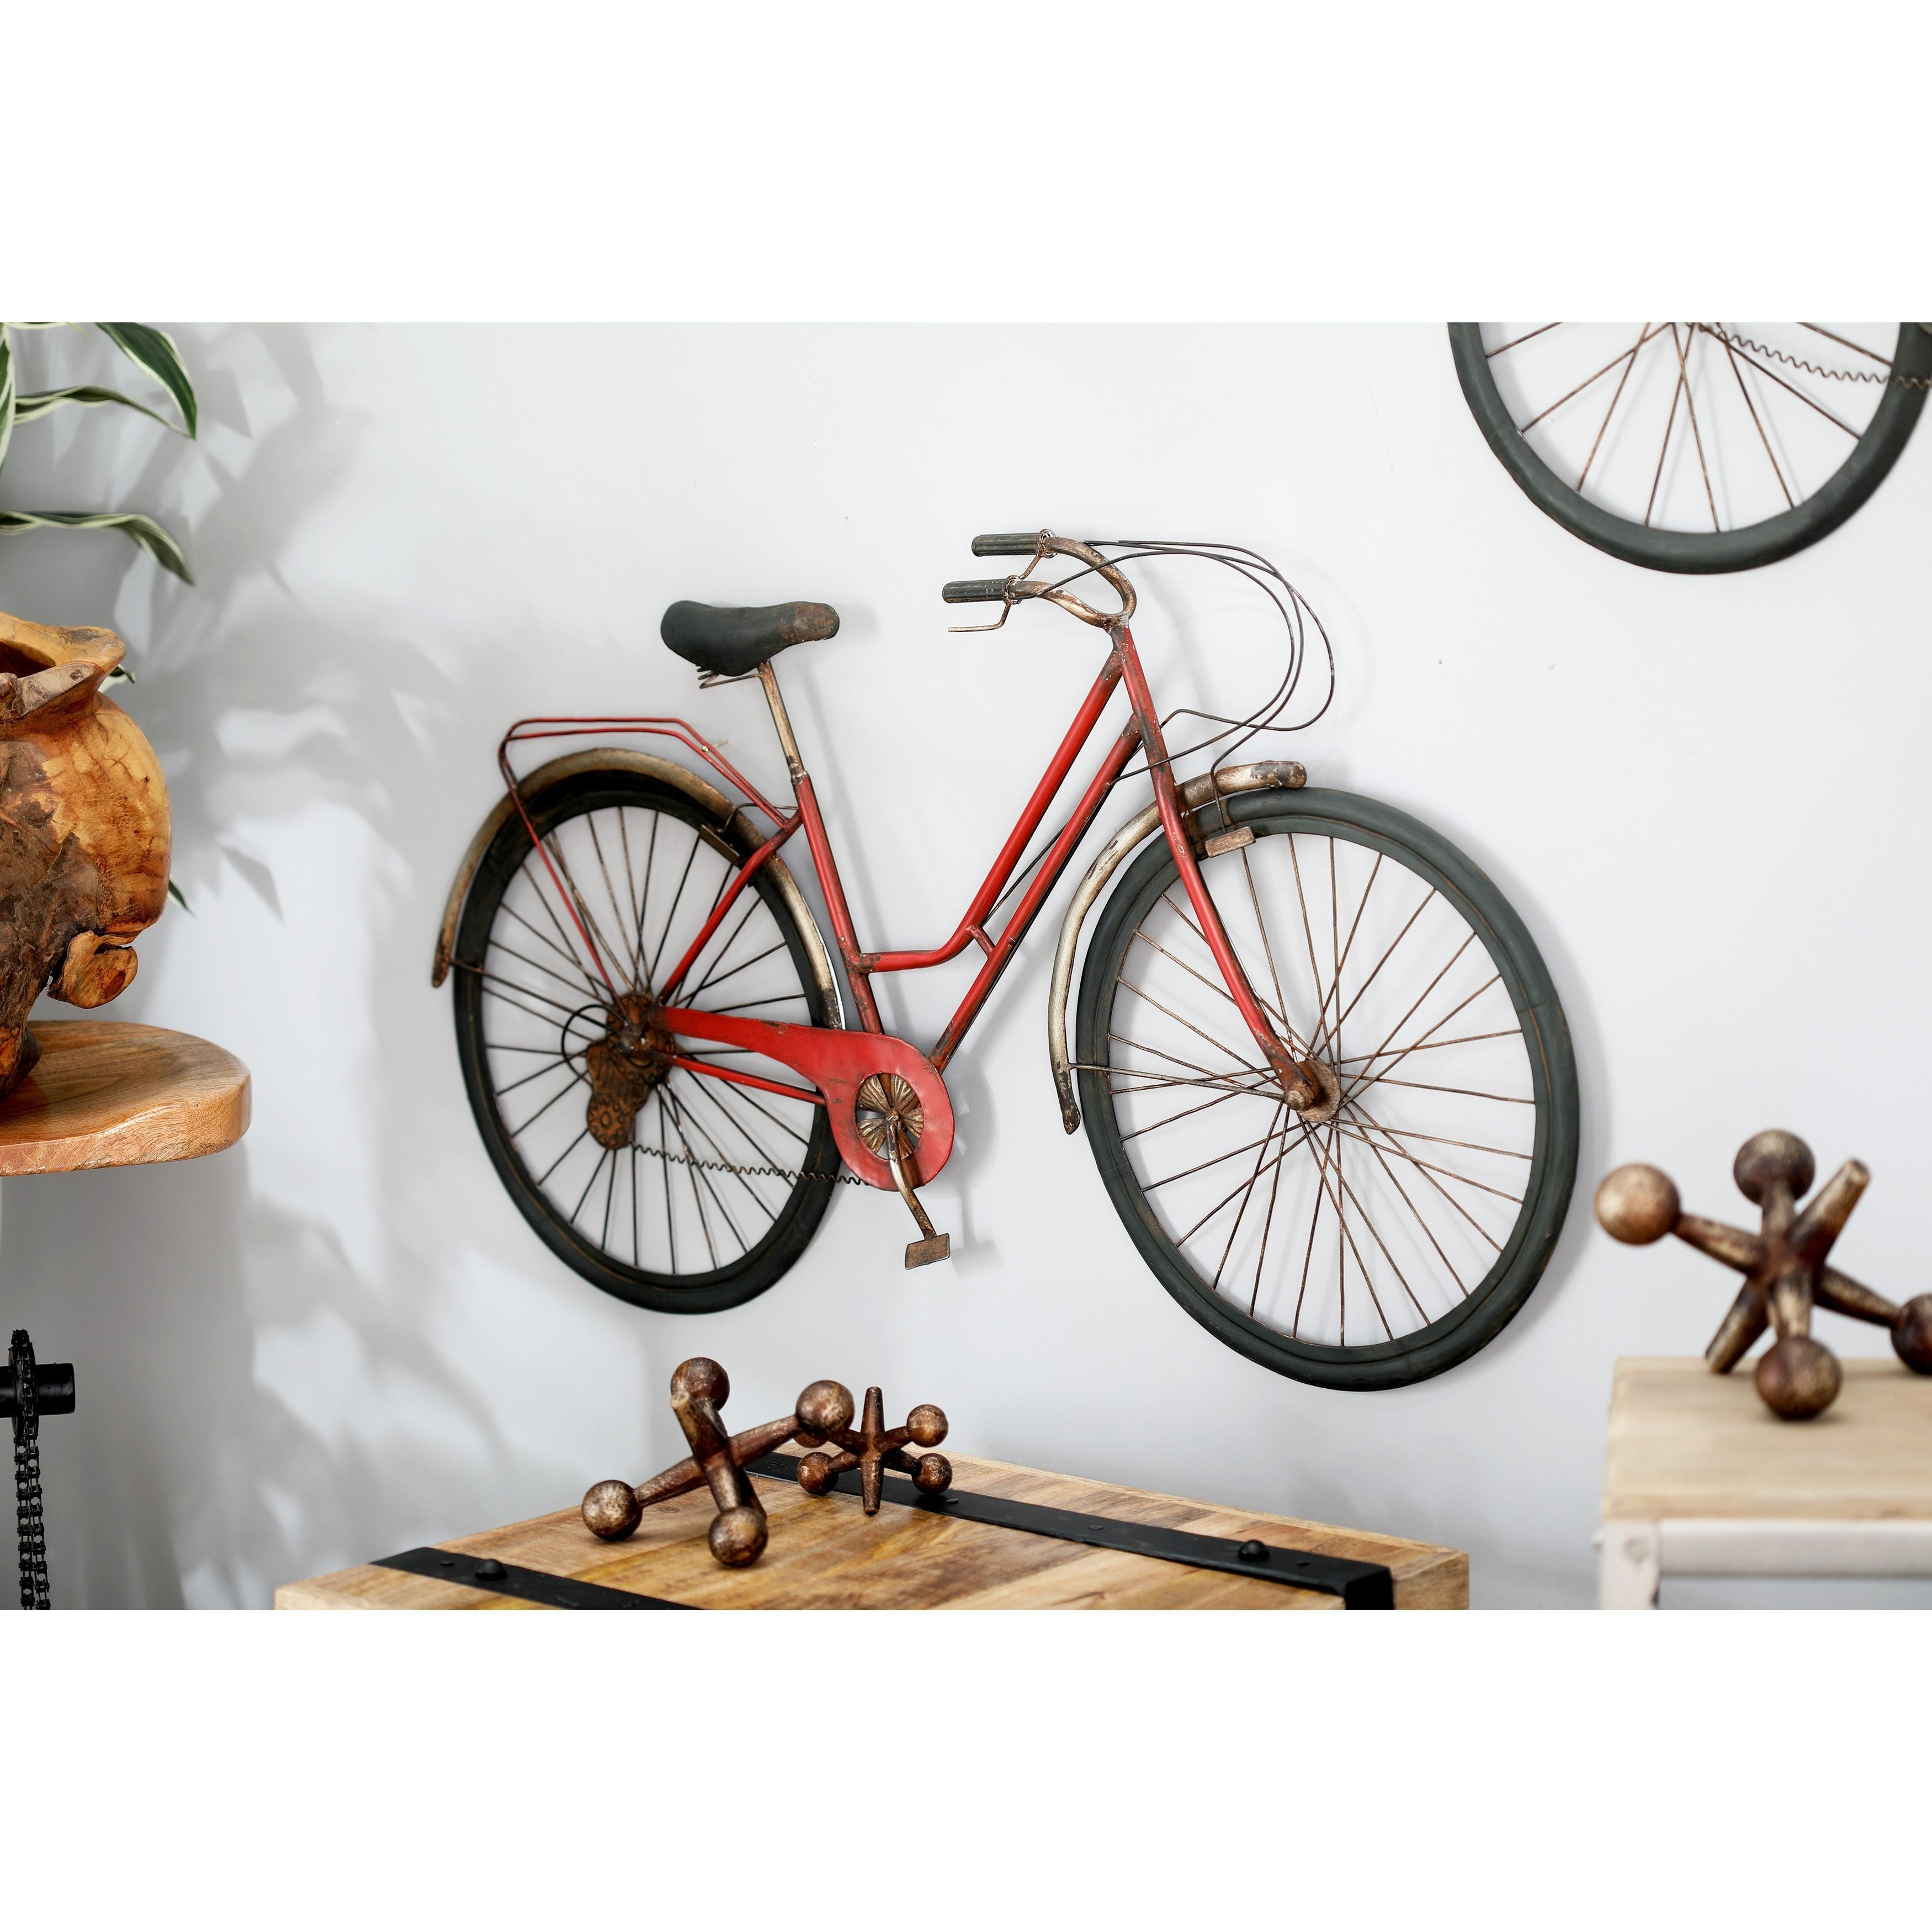 Shop Modern Iron Red Bicycle Wall Decor – Free Shipping Today Throughout Most Recently Released Bike Wall Decor (Gallery 16 of 20)